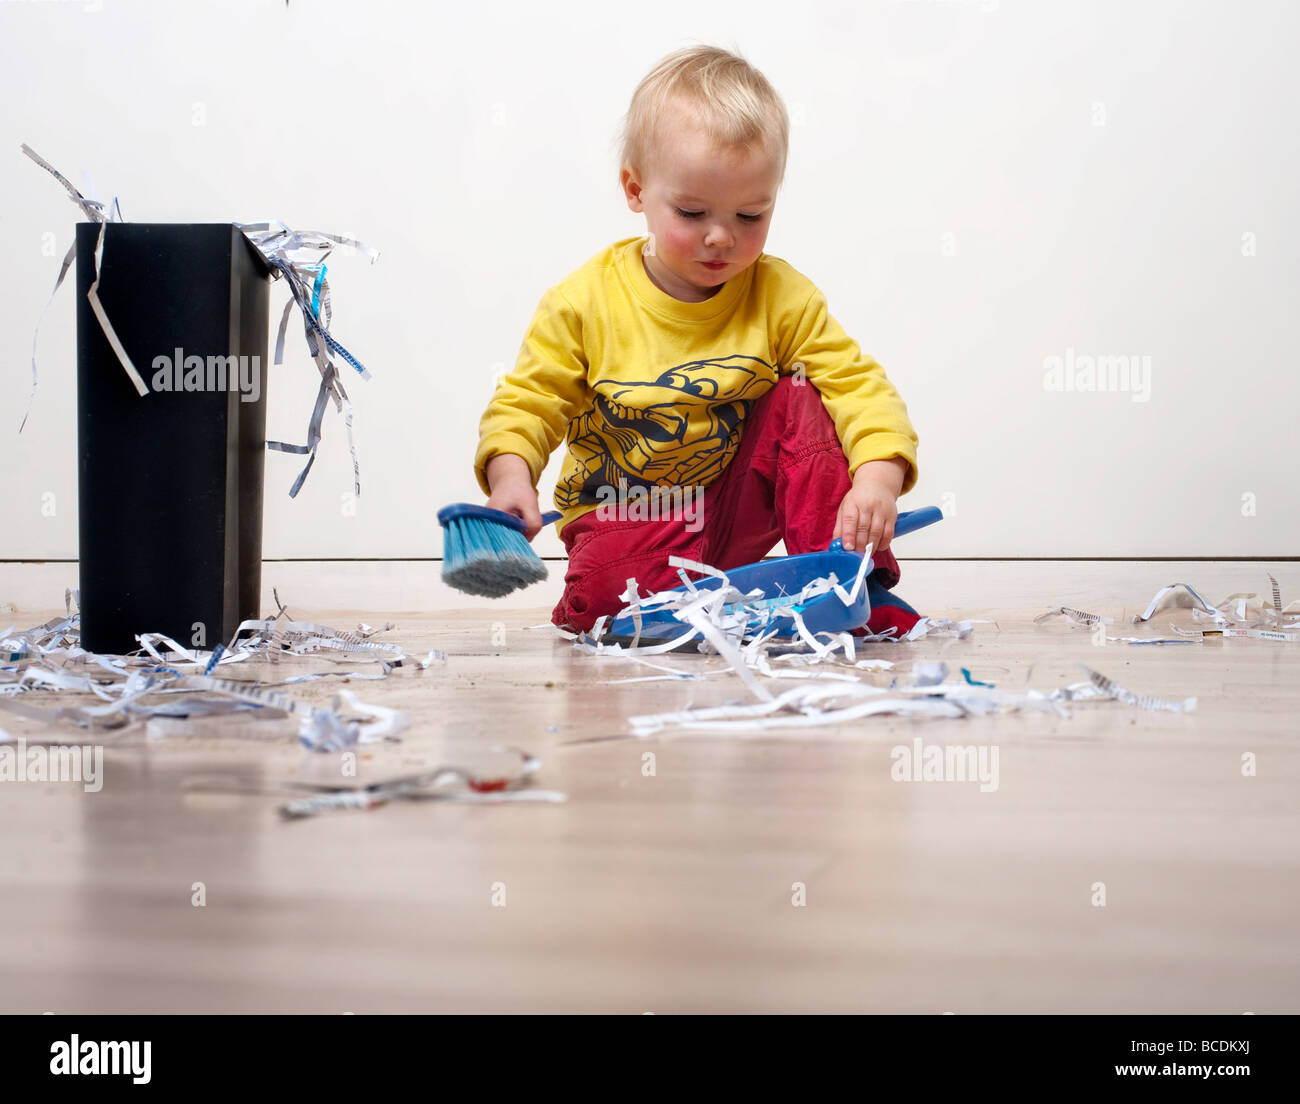 Young child cleaning up shredded papaer - Stock Image